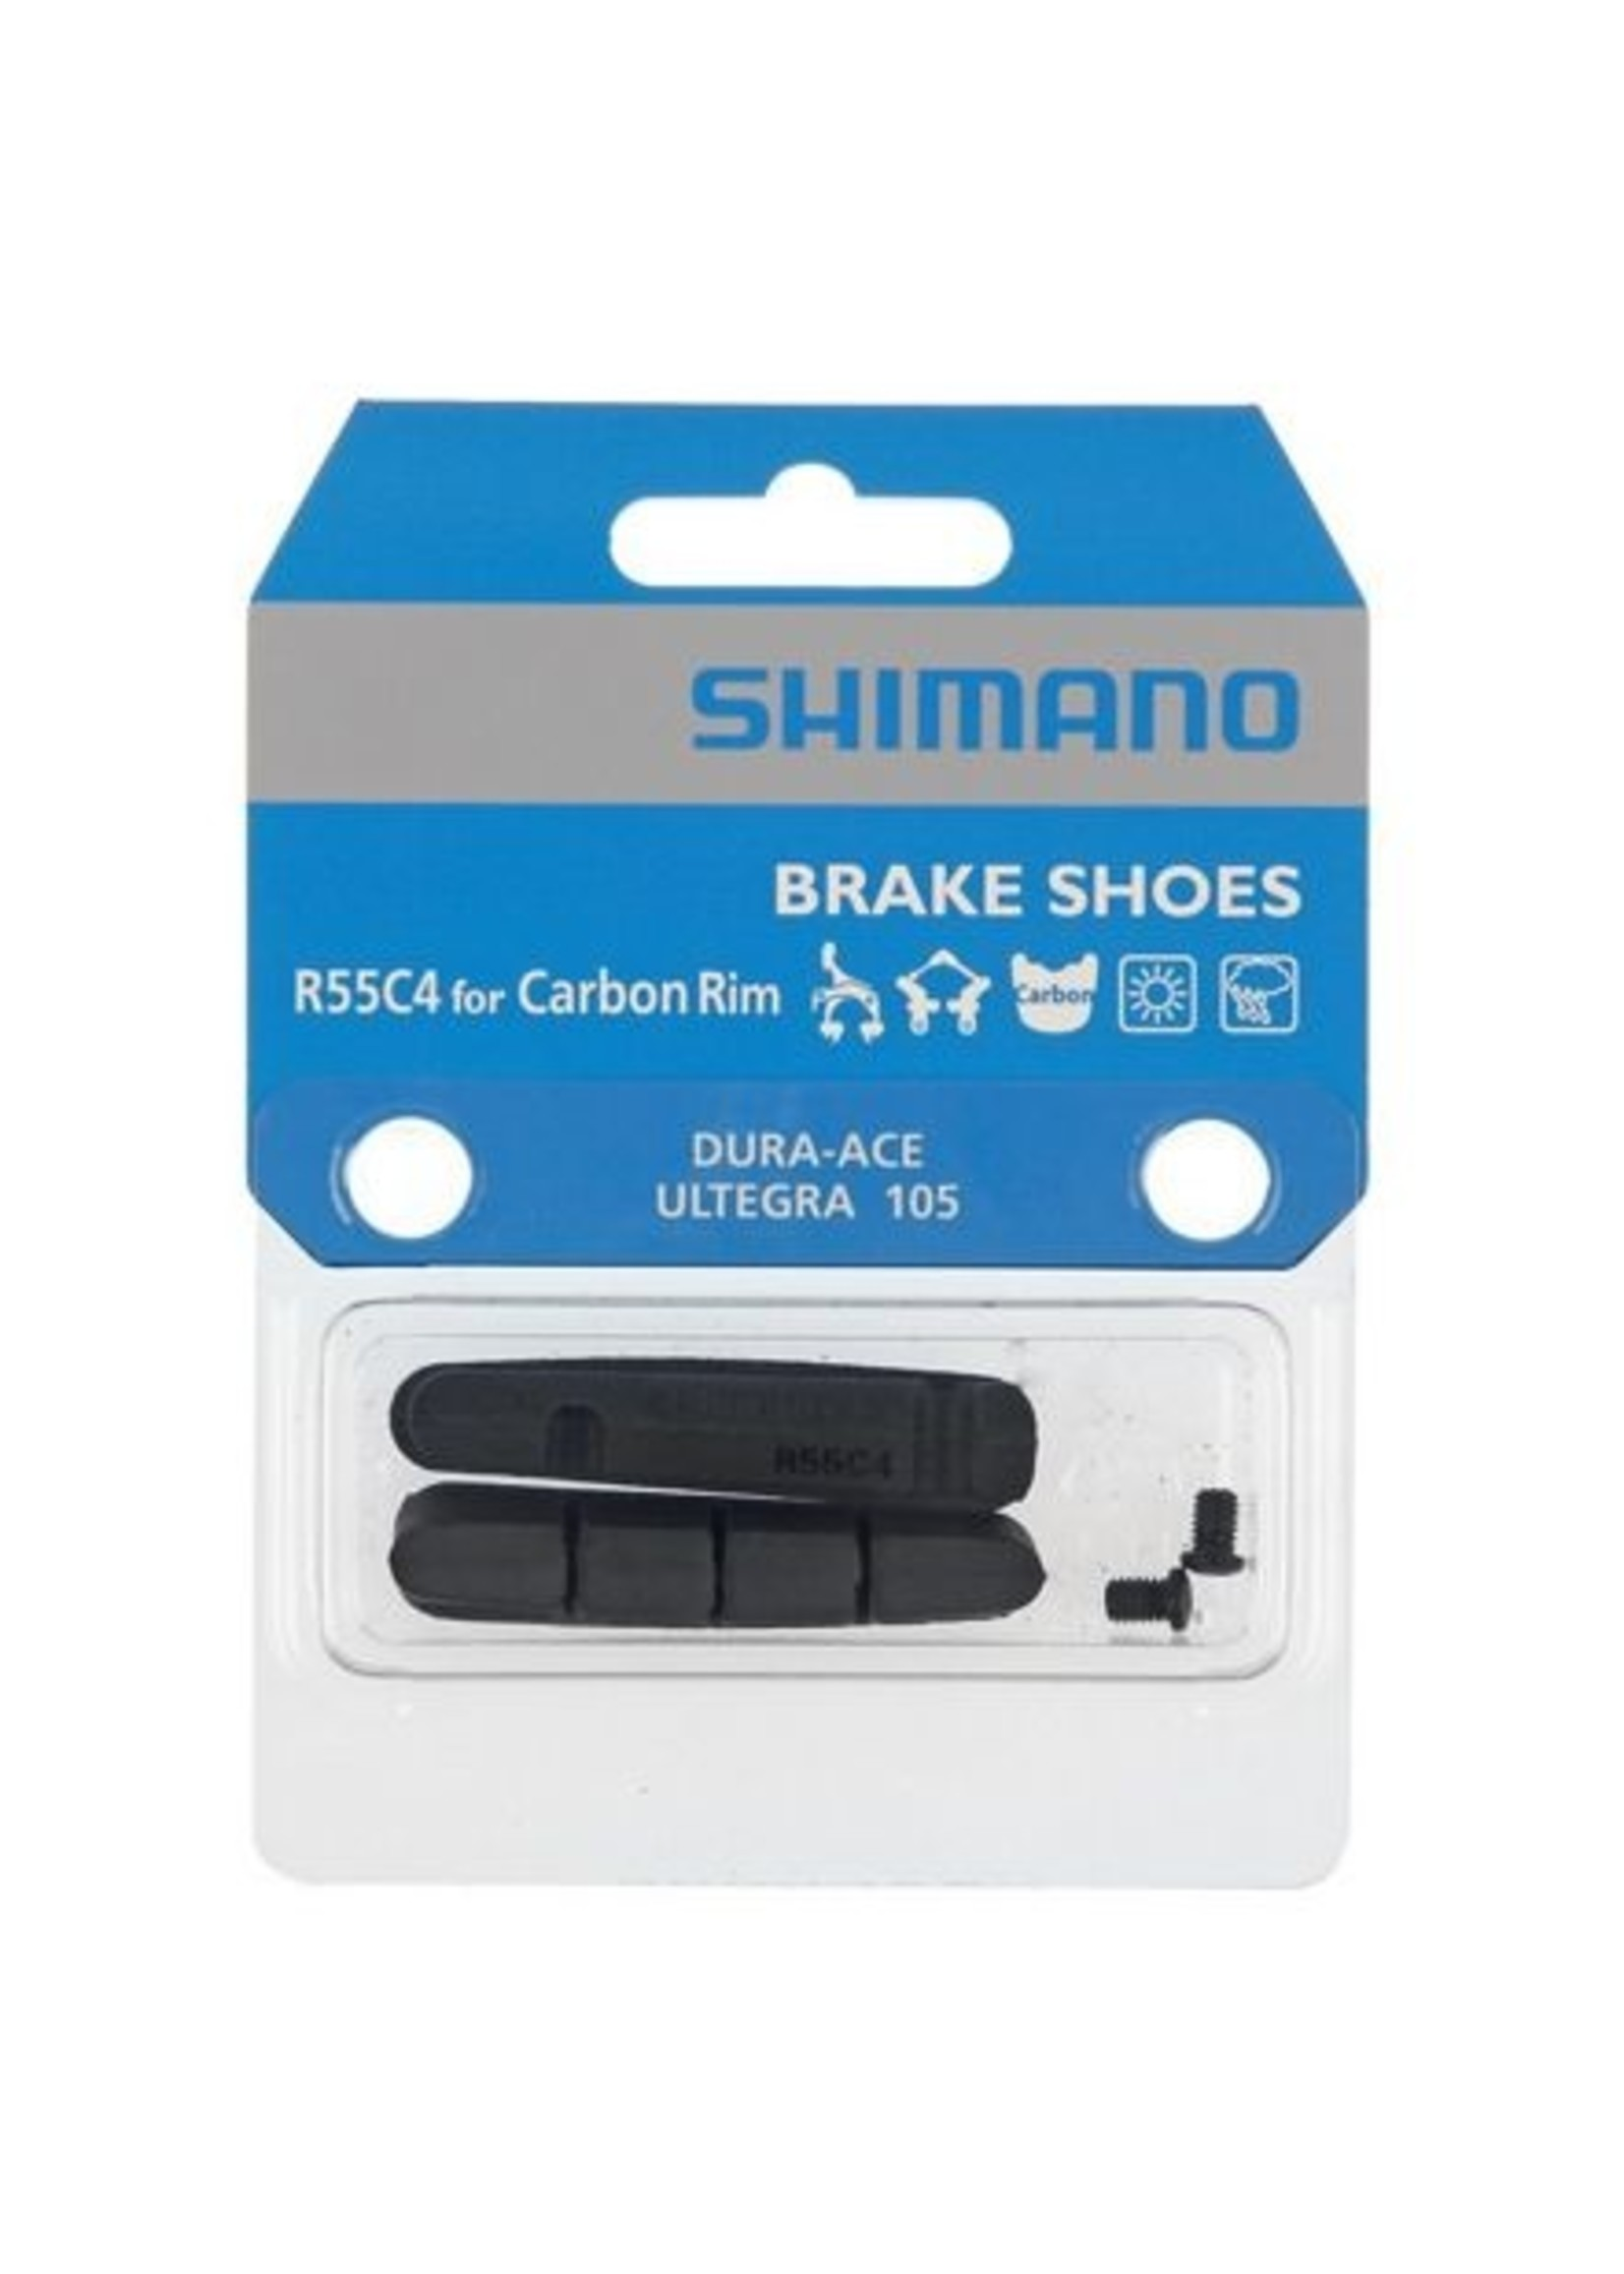 Shimano R55C4 BRAKE SHOES & FIXING BOLTS FOR CARBON RIM